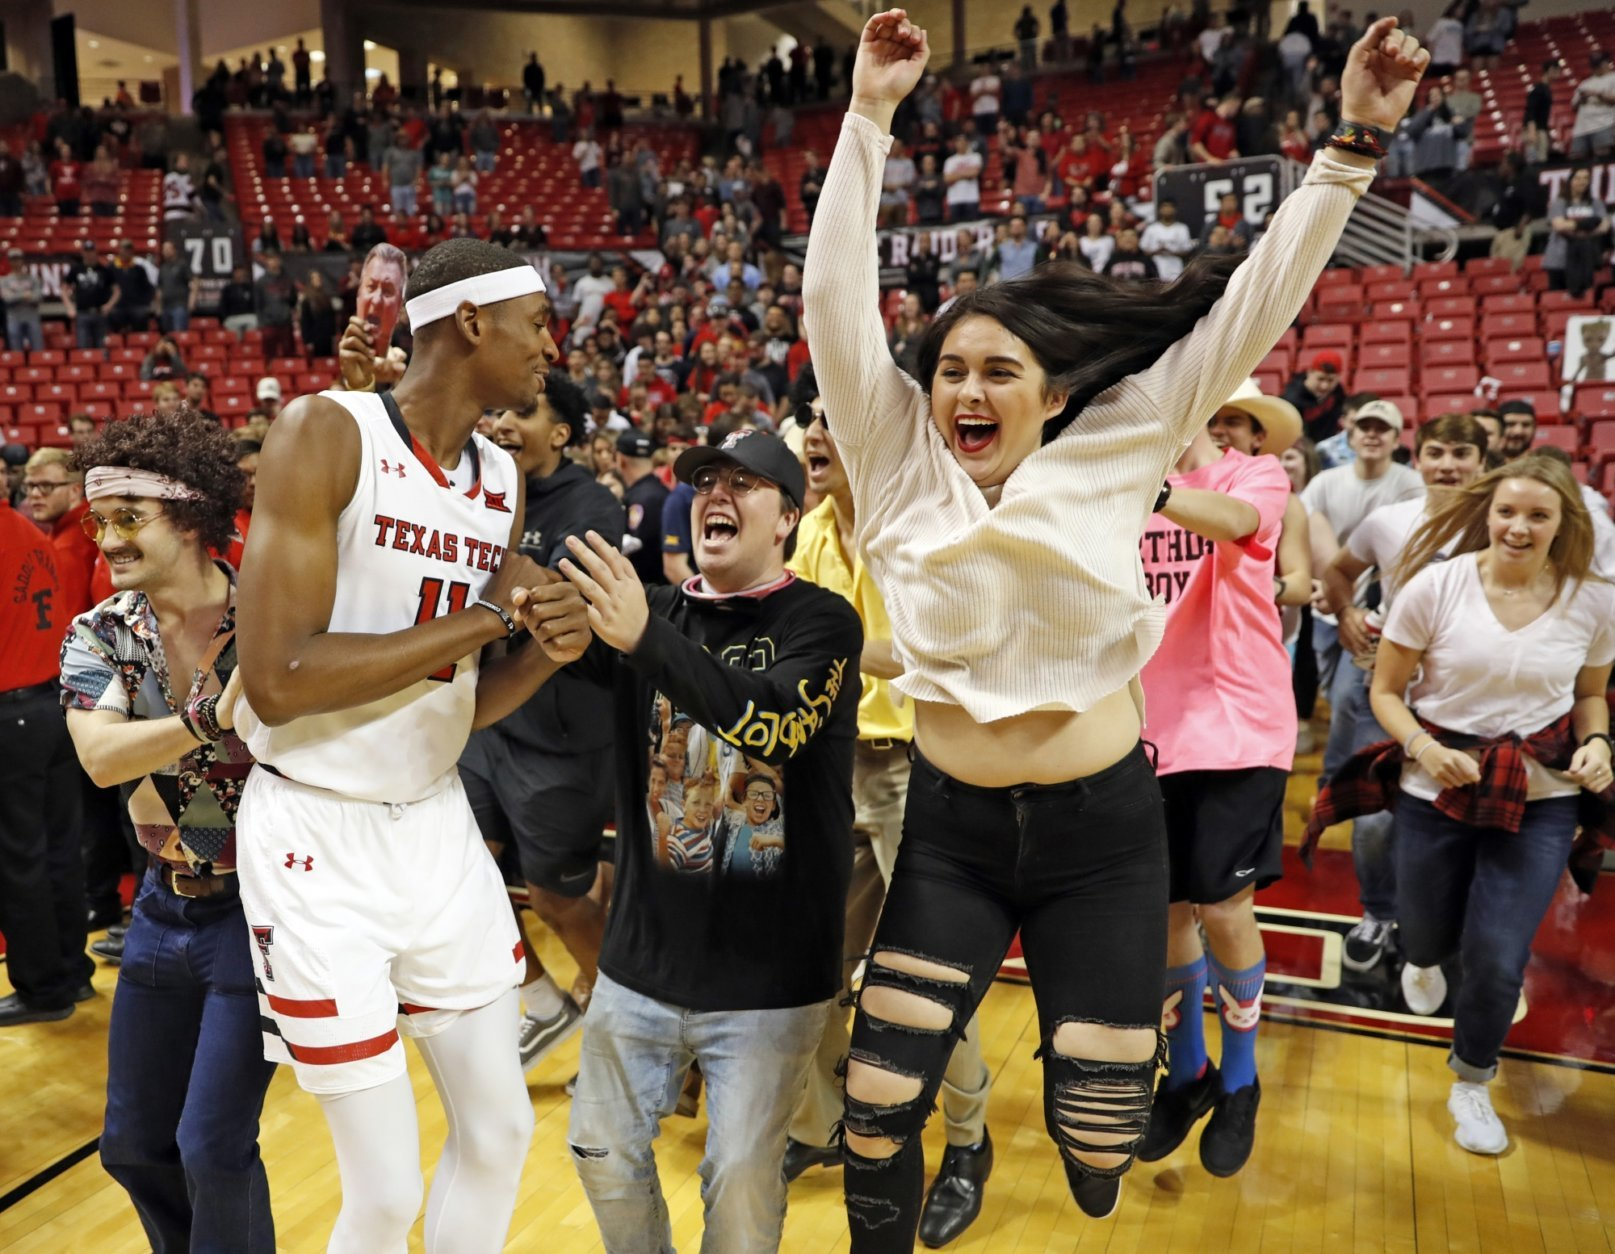 Texas Tech fans run onto the court to celebrate with Tariq Owens (11) and the rest of the team after an NCAA college basketball game against West Virginia, Monday, Feb. 4, 2019, in Lubbock, Texas. Texas Tech won 81-50. (AP Photo/Brad Tollefson)